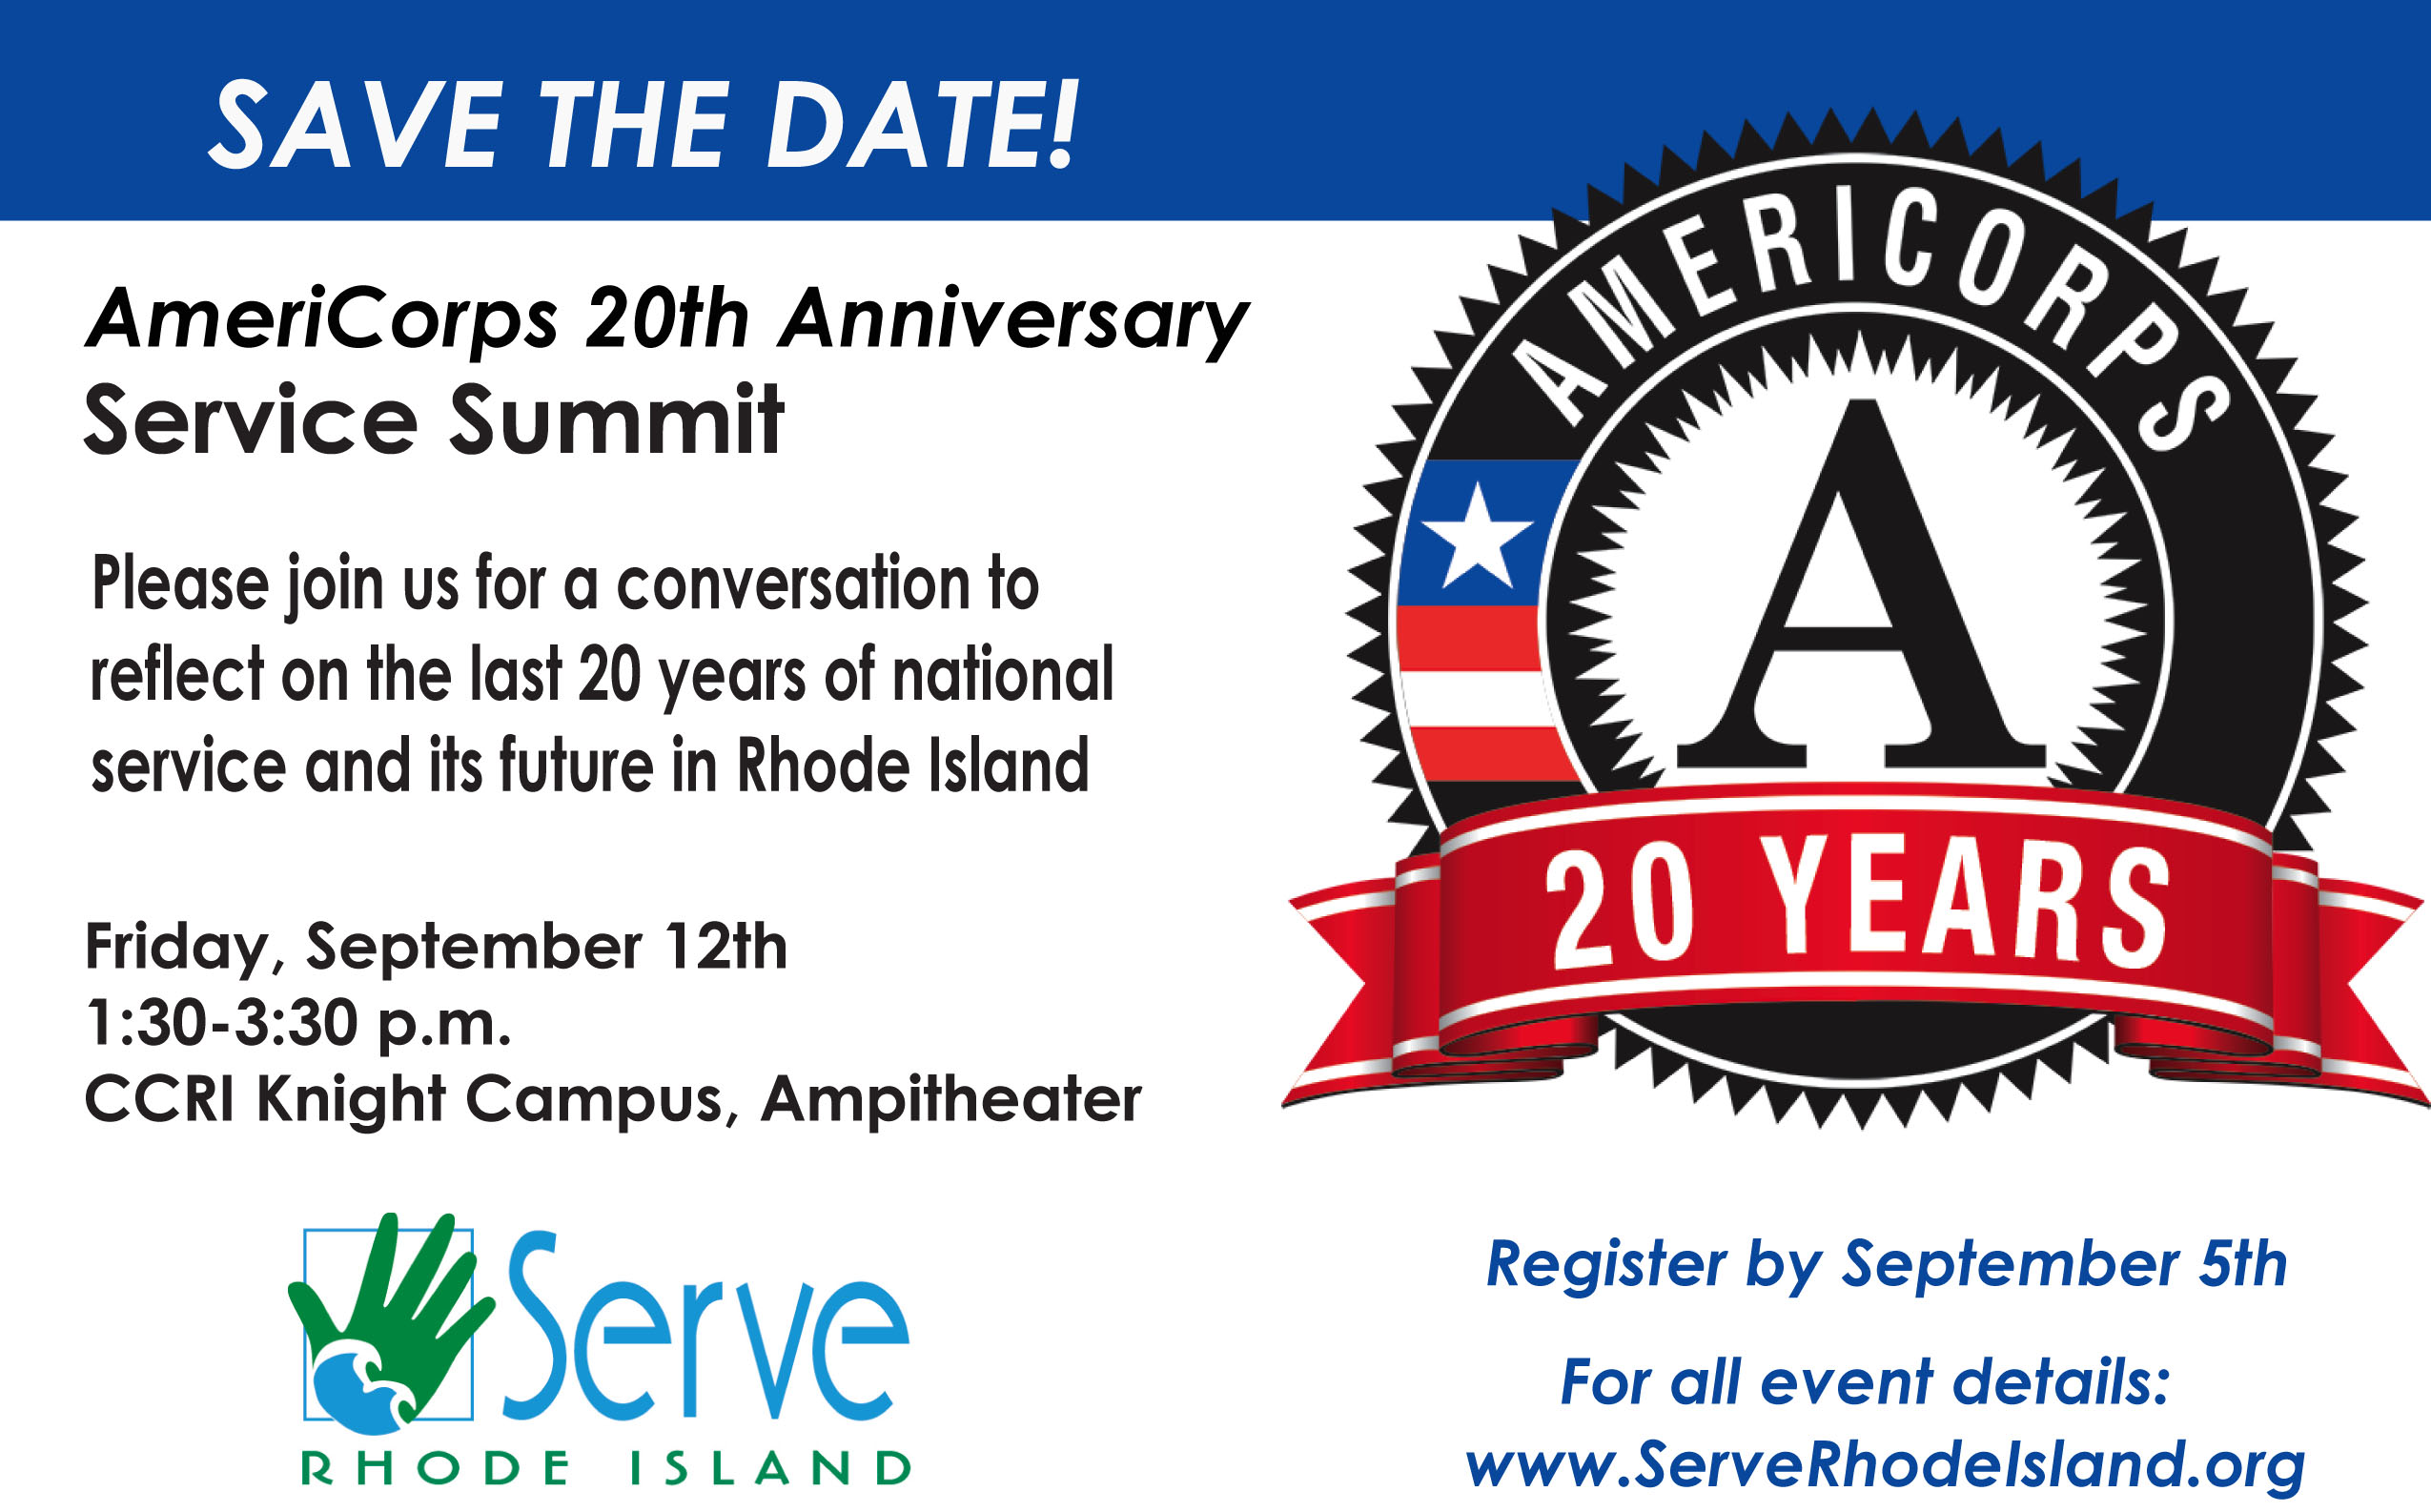 Service Summit Save the Date